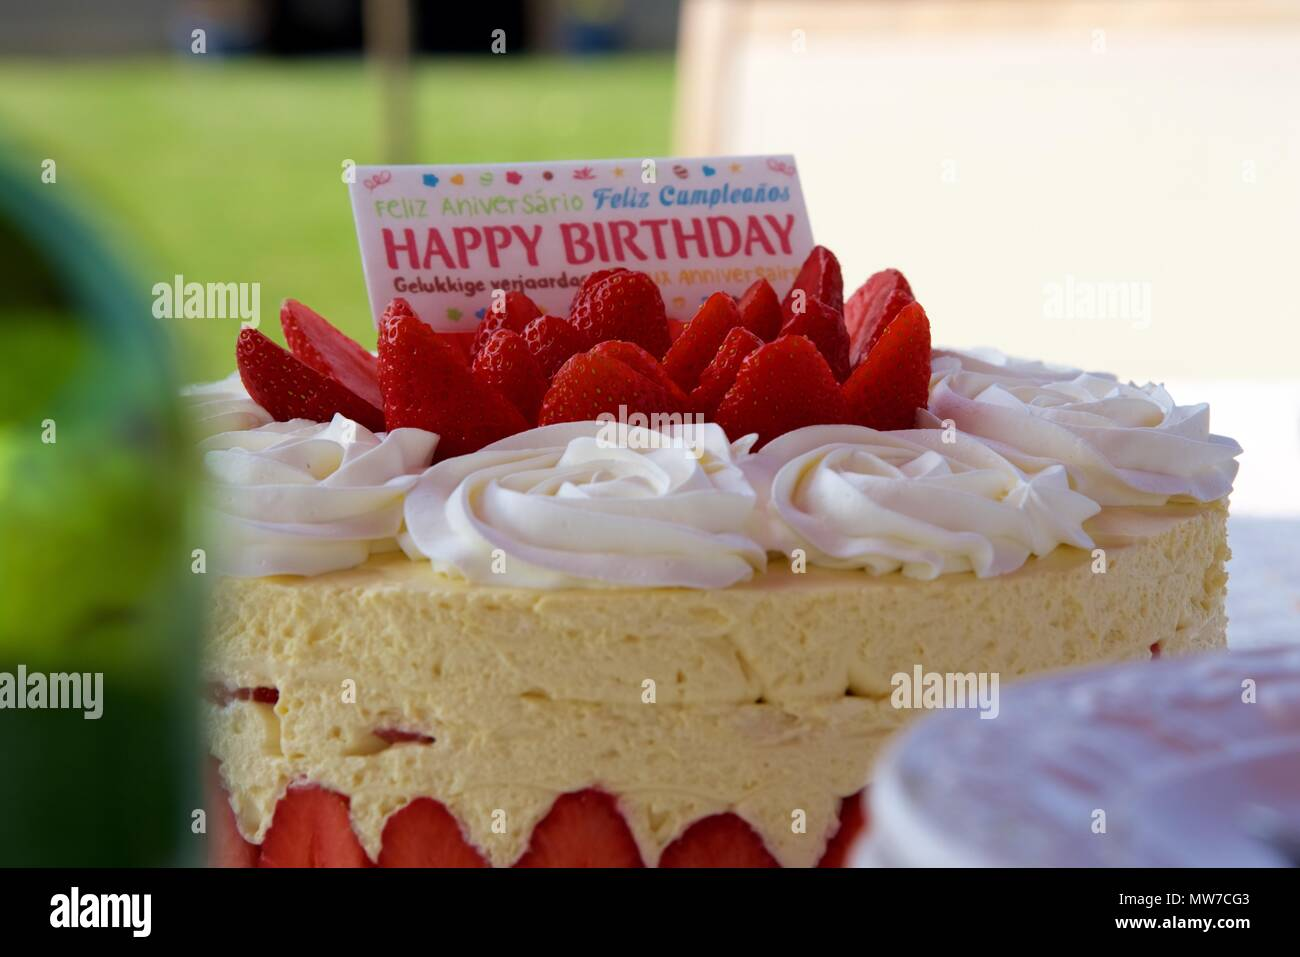 Birthday Cake A Strawberry With Multi Lingual Card Saying Happy